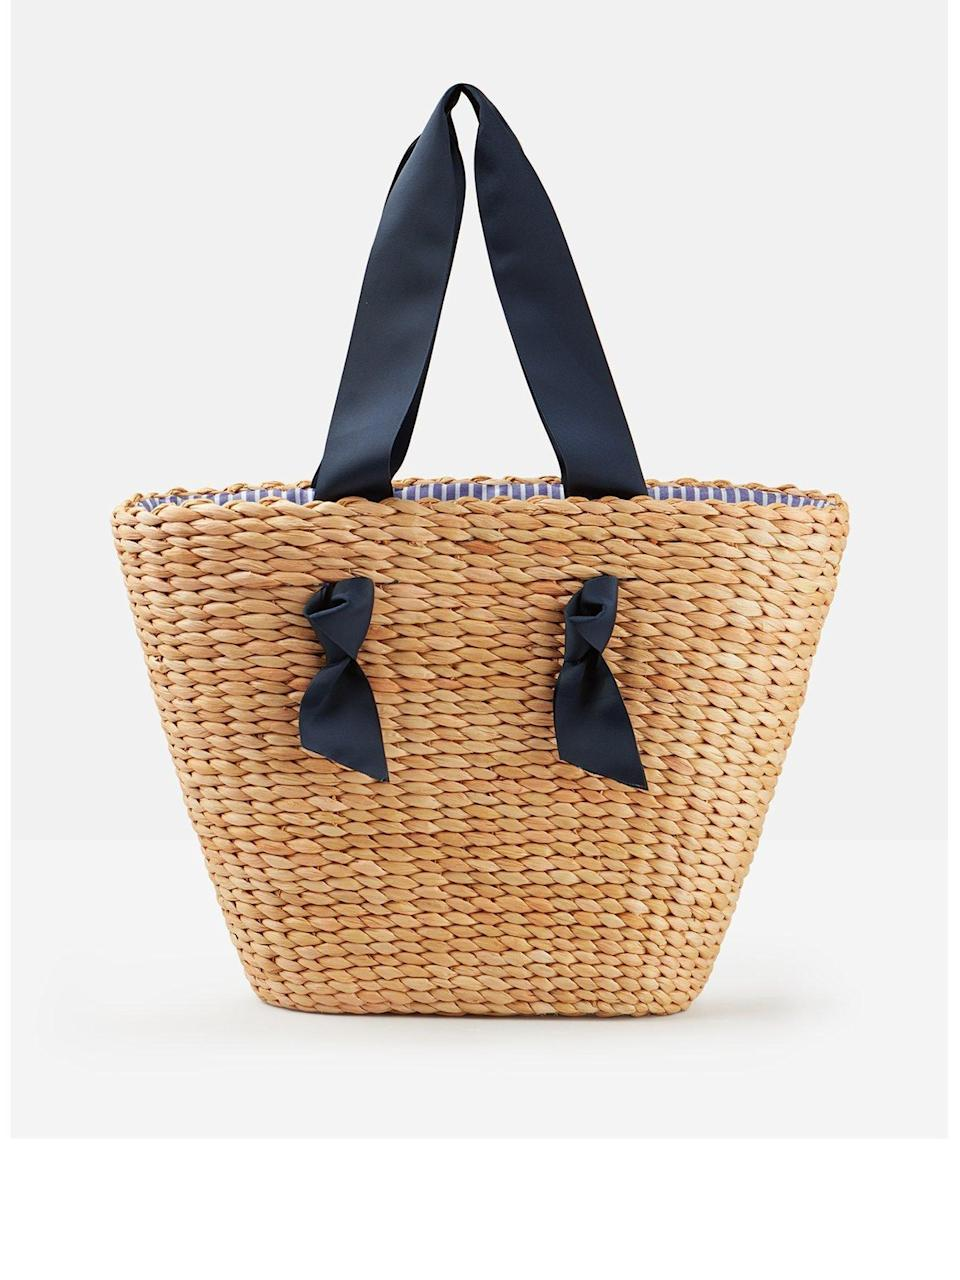 """As well as my purse and phone, a good bag needs to be able to fit crisps, dip and Whispering Angel (all the important stuff). This woven shopper is summery and practical in equal measure.<br><br><strong>Joules</strong> Albury Woven Straw Shopper Bag, $, available at <a href=""""https://www.very.co.uk/joules-albury-woven-straw-shopper-bag-natural/1600404019.prd"""" rel=""""nofollow noopener"""" target=""""_blank"""" data-ylk=""""slk:Very"""" class=""""link rapid-noclick-resp"""">Very</a>"""